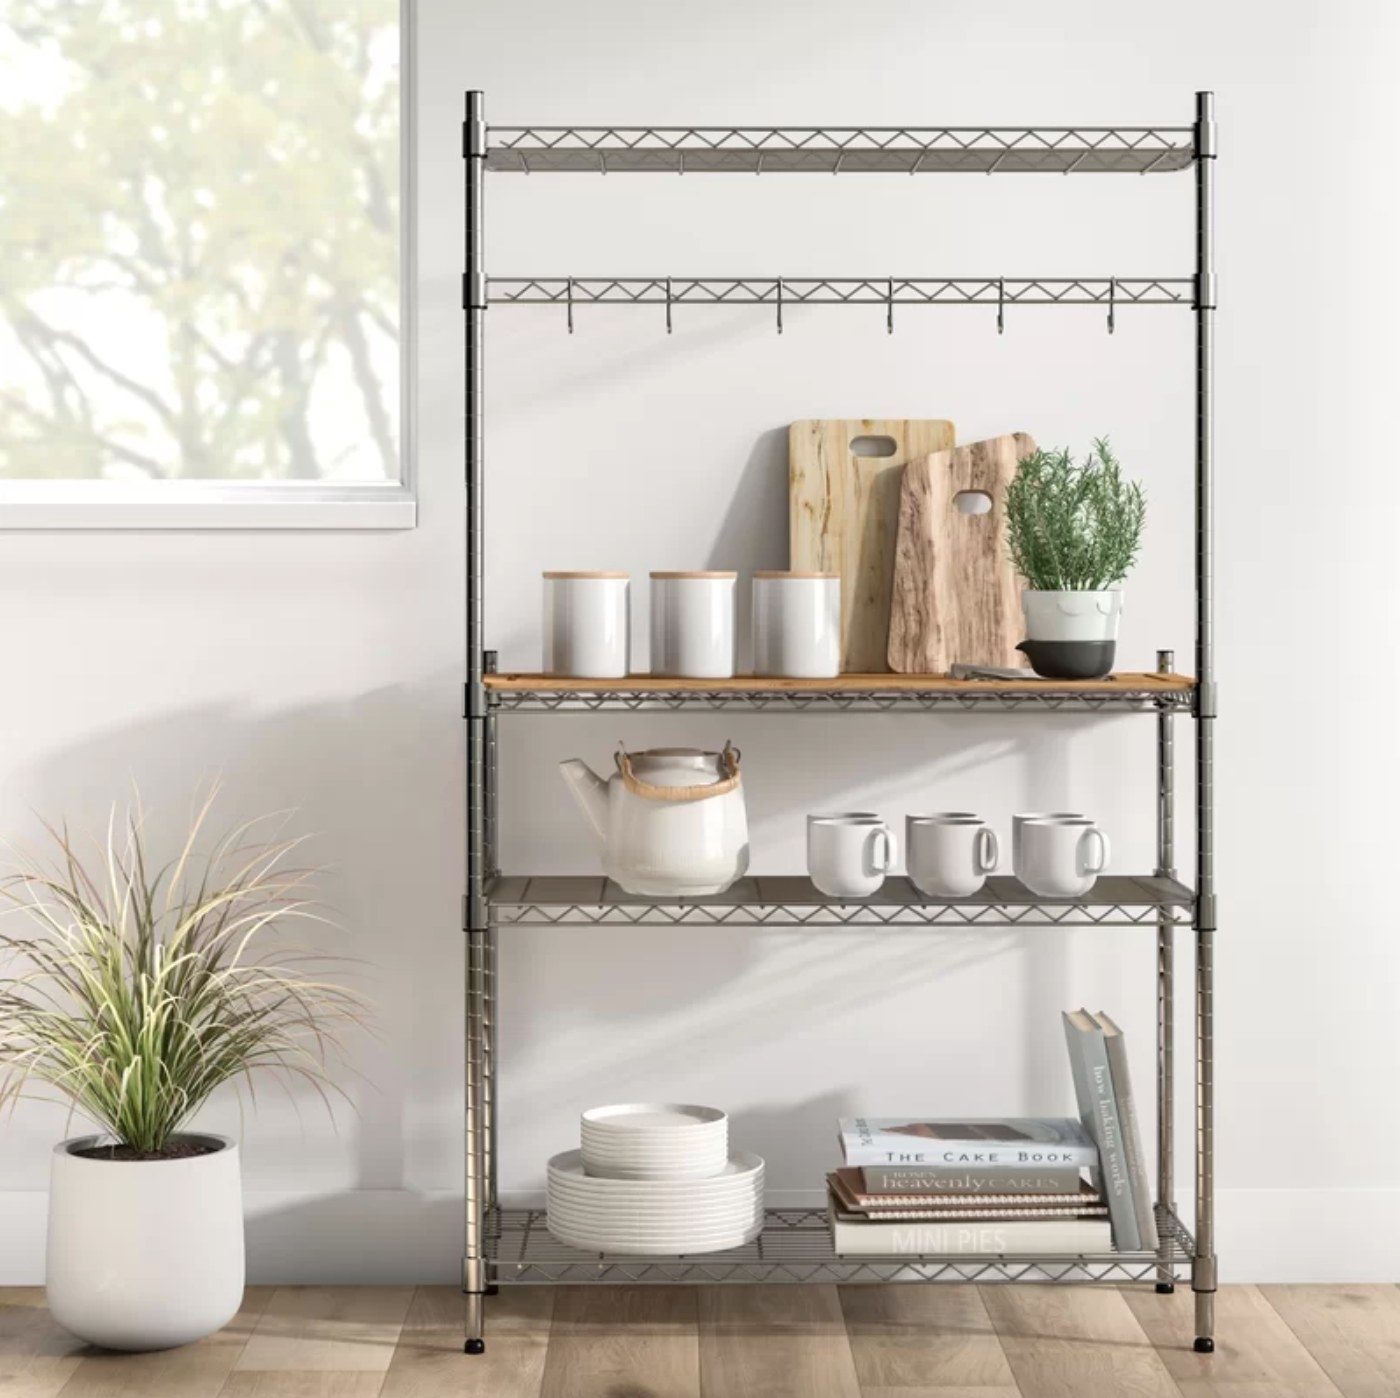 The chrome baker's rack holding coffee mugs, plates, books, and cutting boards